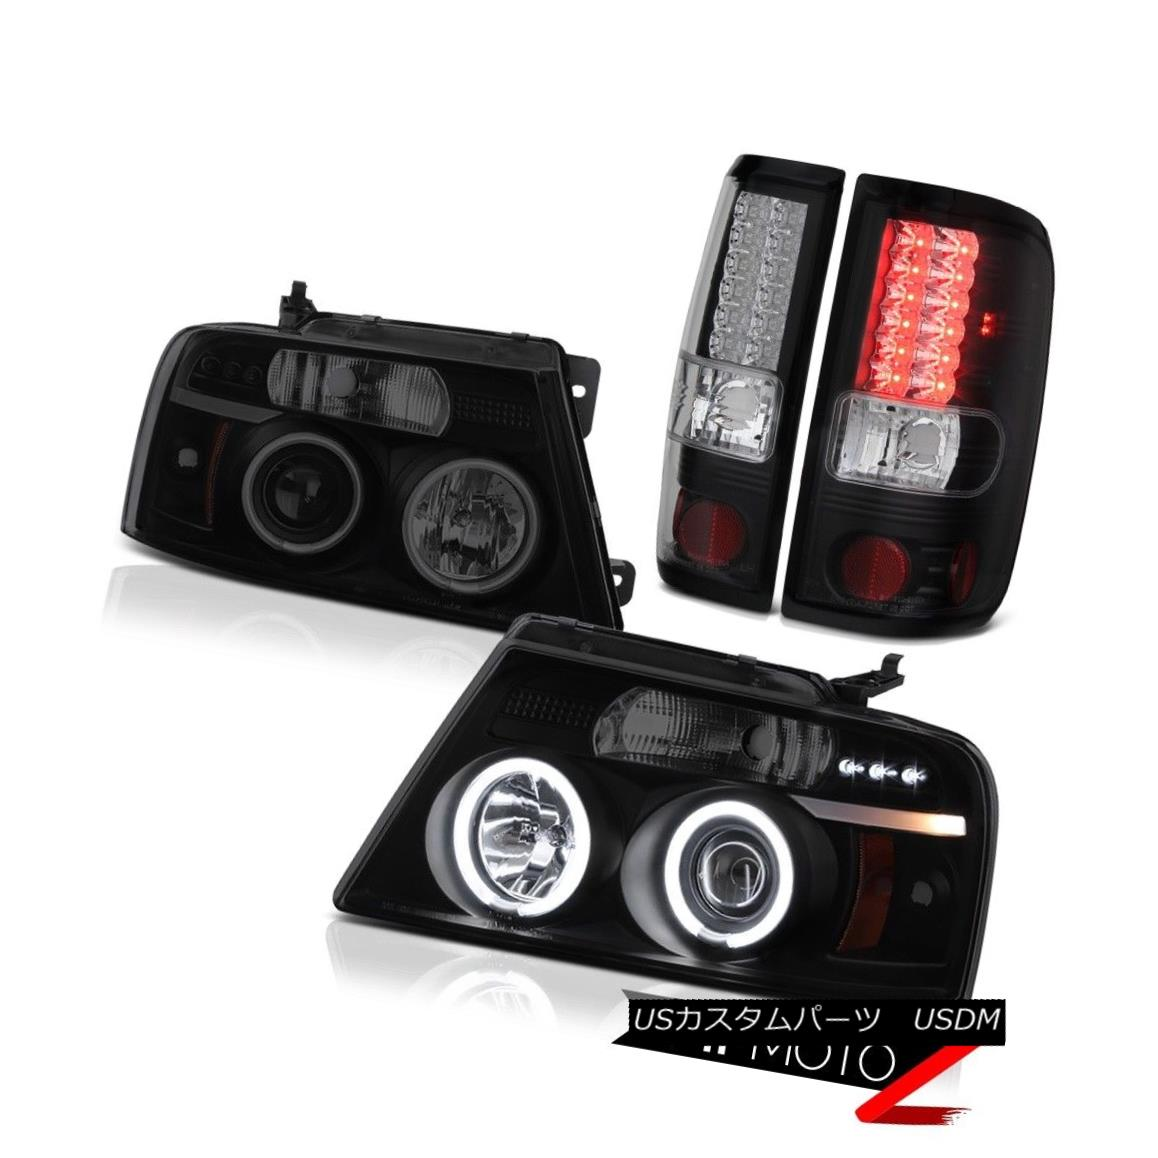 テールライト SINISTER BLACK 2004-2008 Ford F150 Smoke CCFL Angel Eye Headlights LED Taillight SINISTER BLACK 2004-2008 Ford F150 Smoke CCFLエンジェルアイヘッドライトLEDテールライト